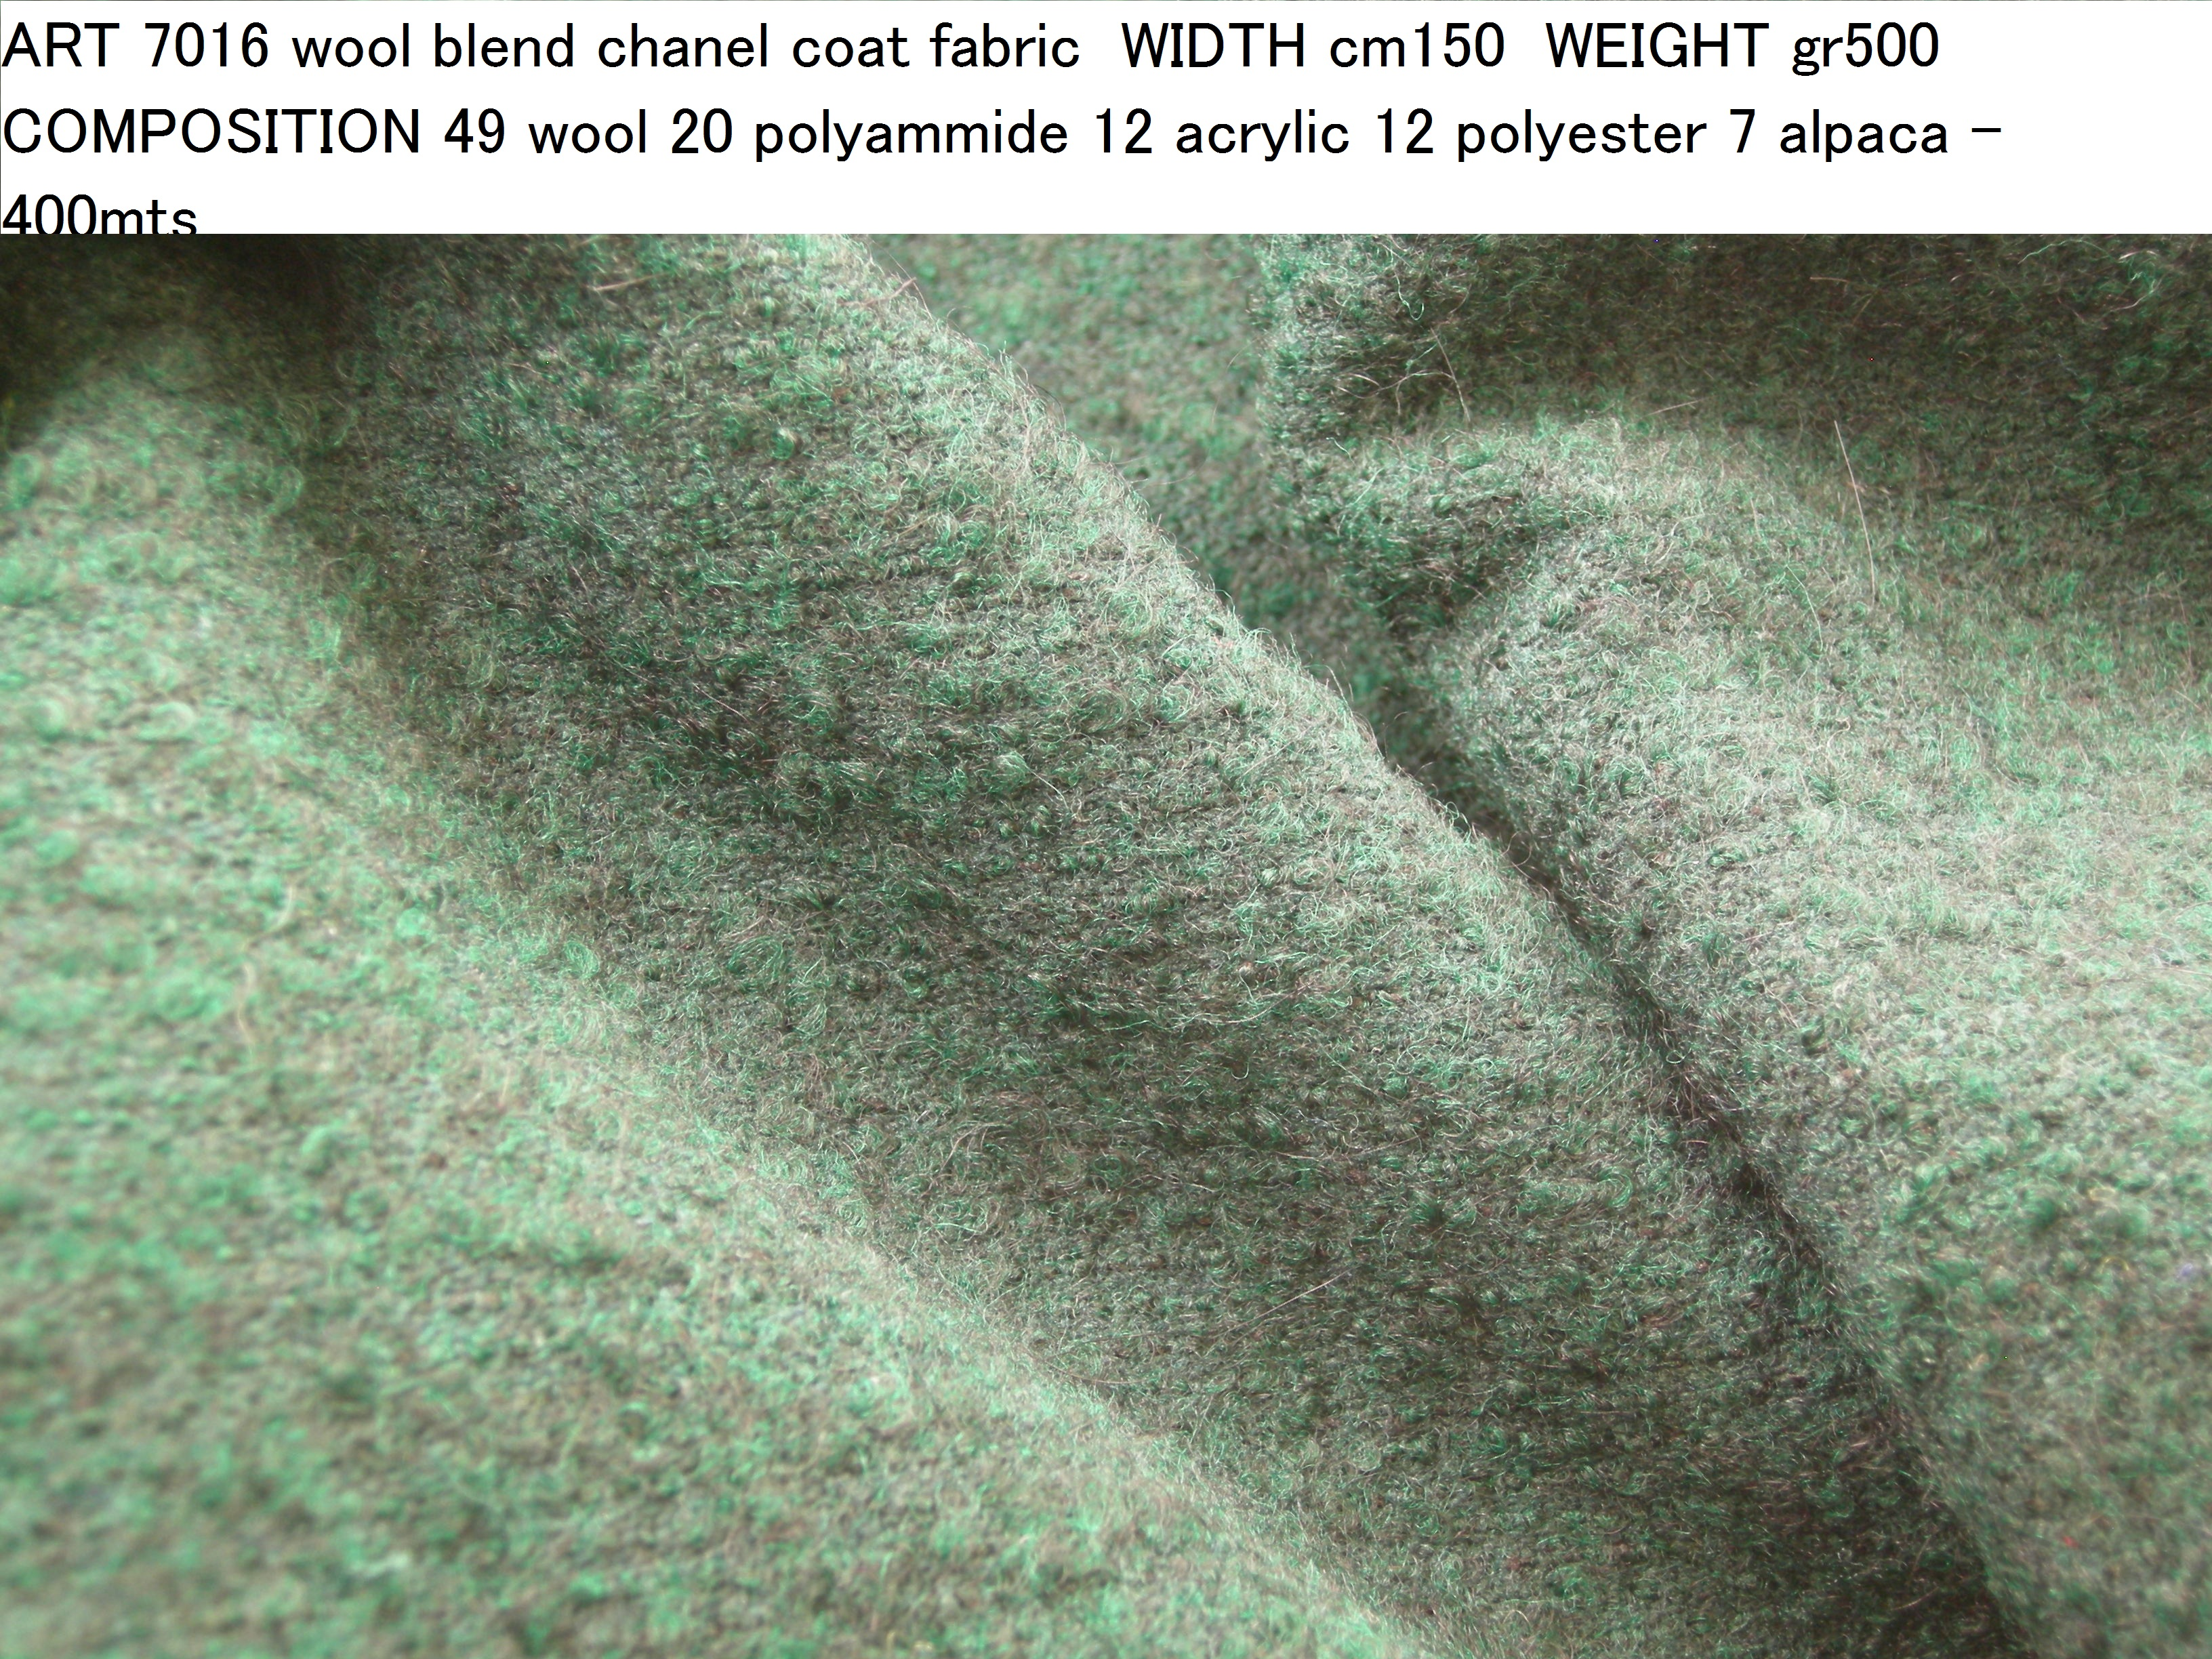 ART 7016 wool blend chanel coat fabric WIDTH cm150 WEIGHT gr500 COMPOSITION 49 wool 20 polyammide 12 acrylic 12 polyester 7 alpaca - 400mts